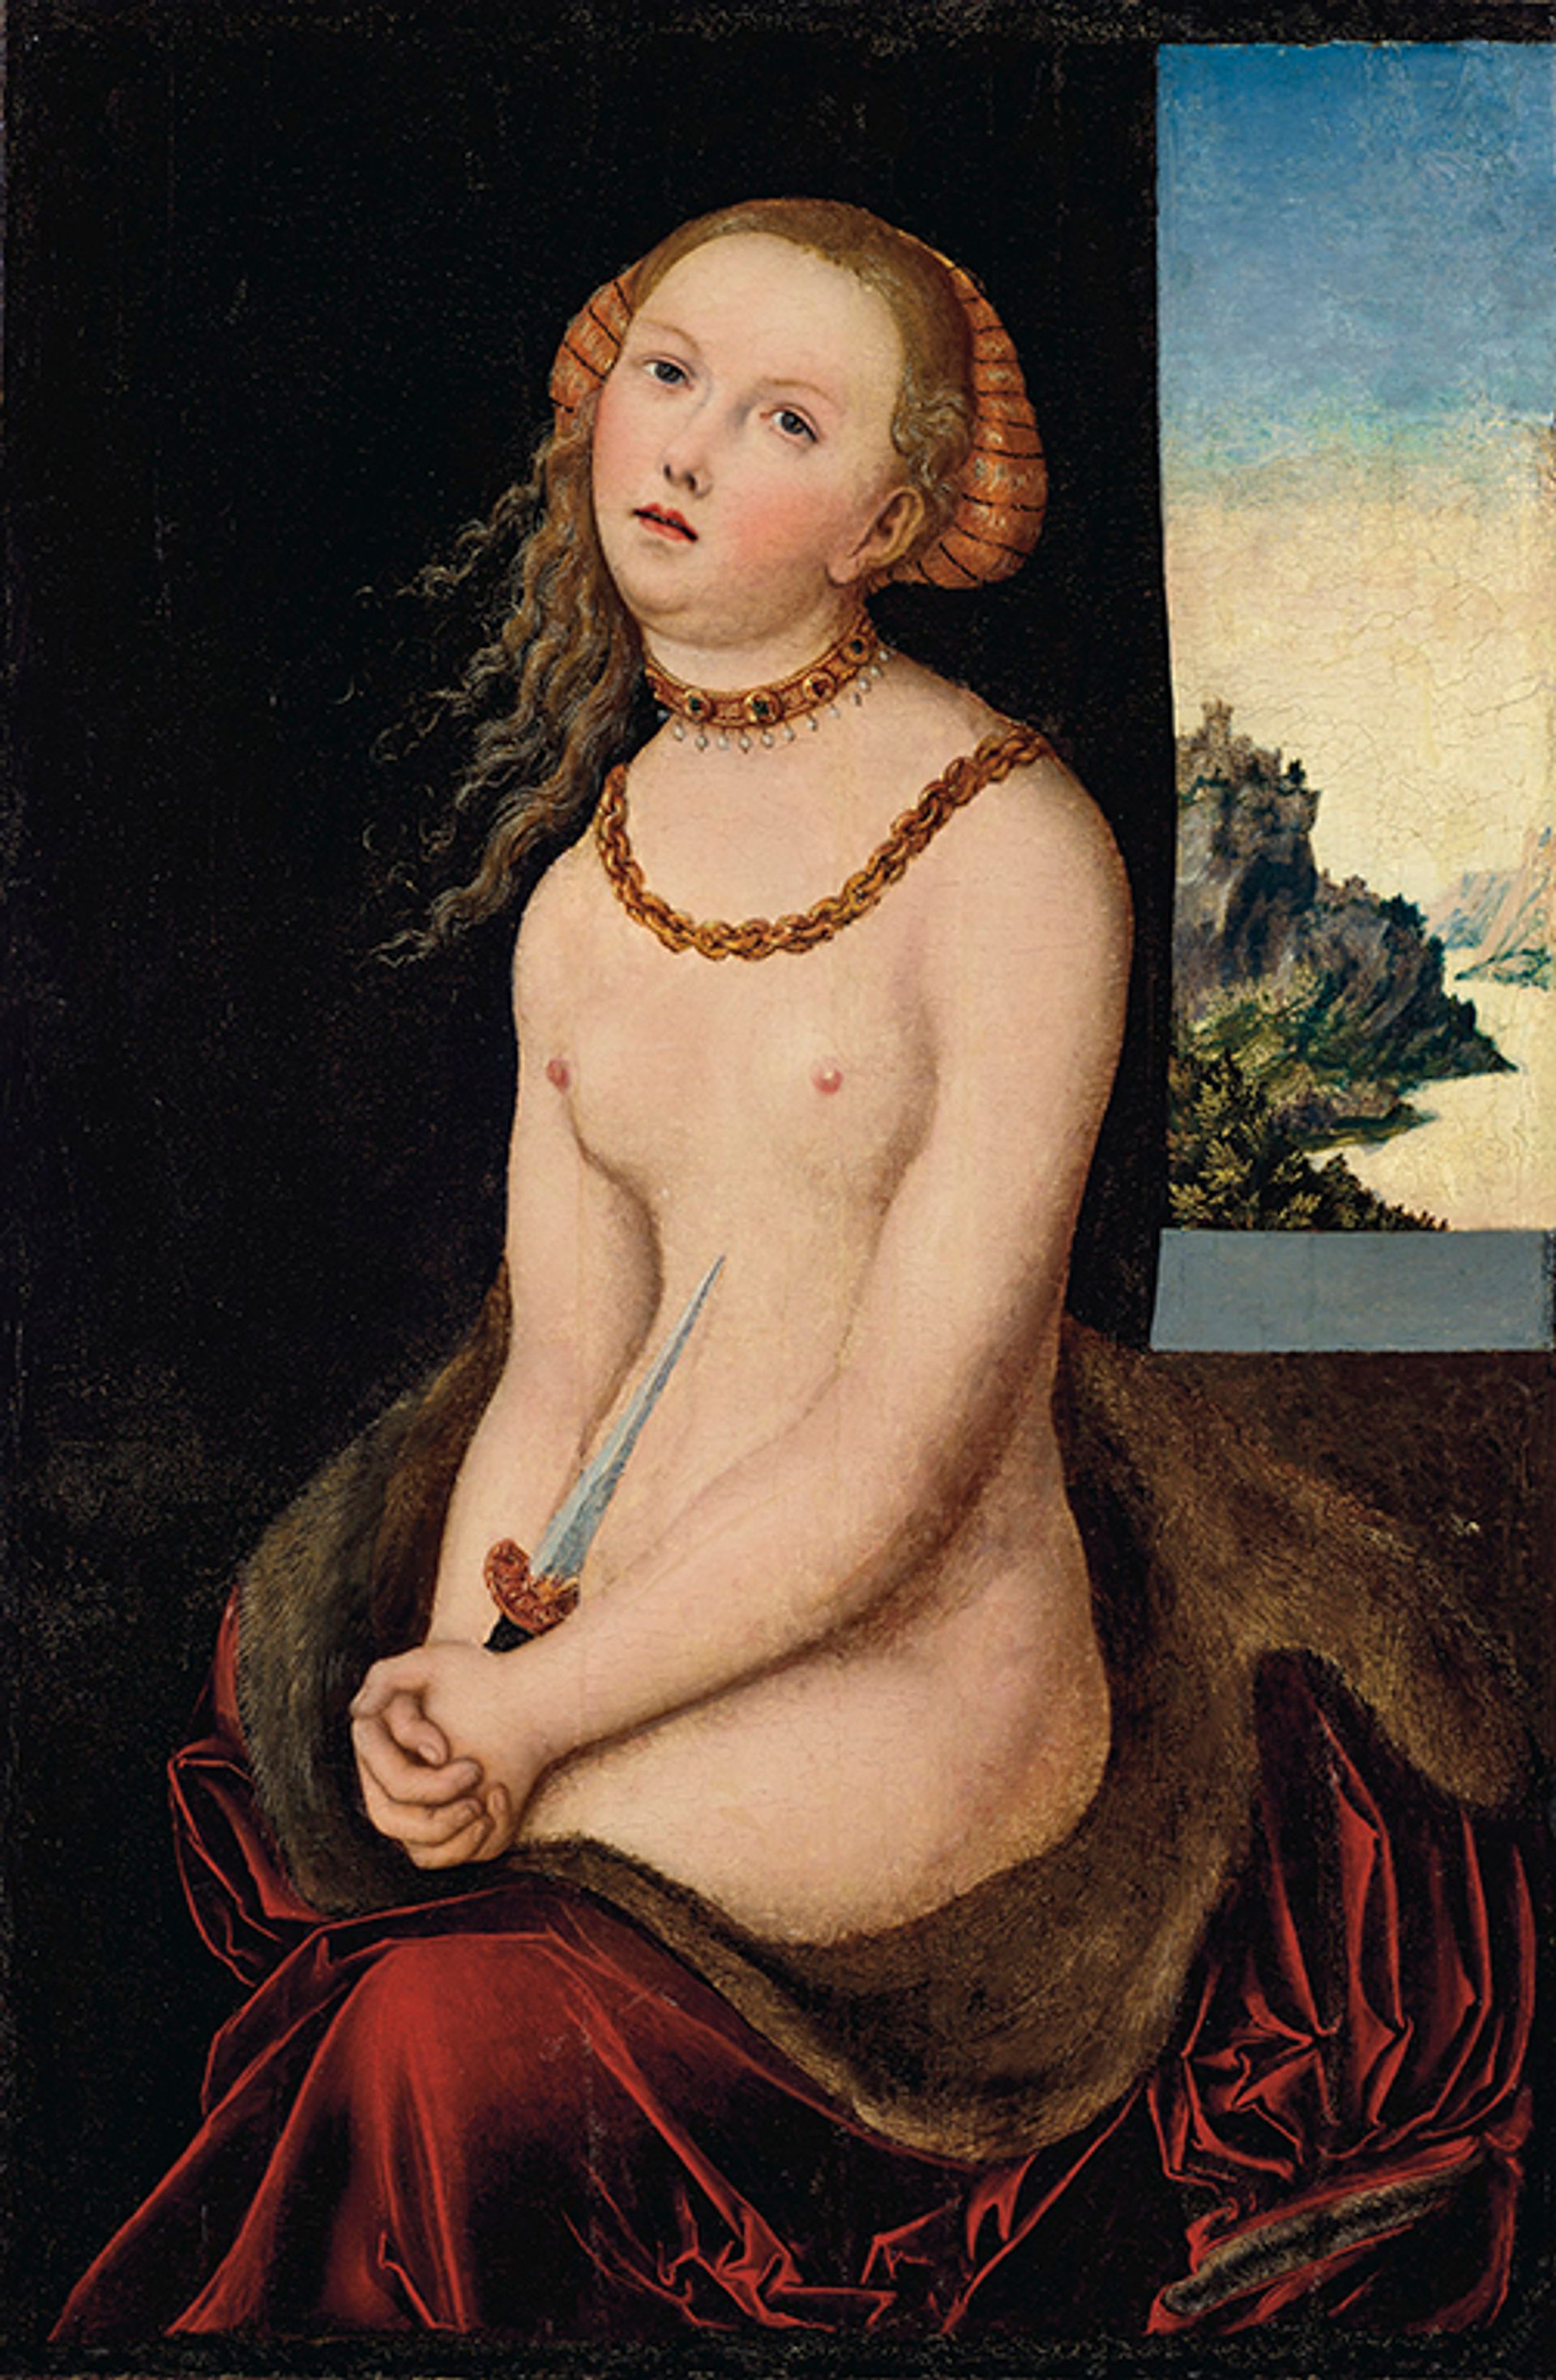 Lucas Cranach the Elder's Lucretia, which is to be auctioned at Christie's on 15 October